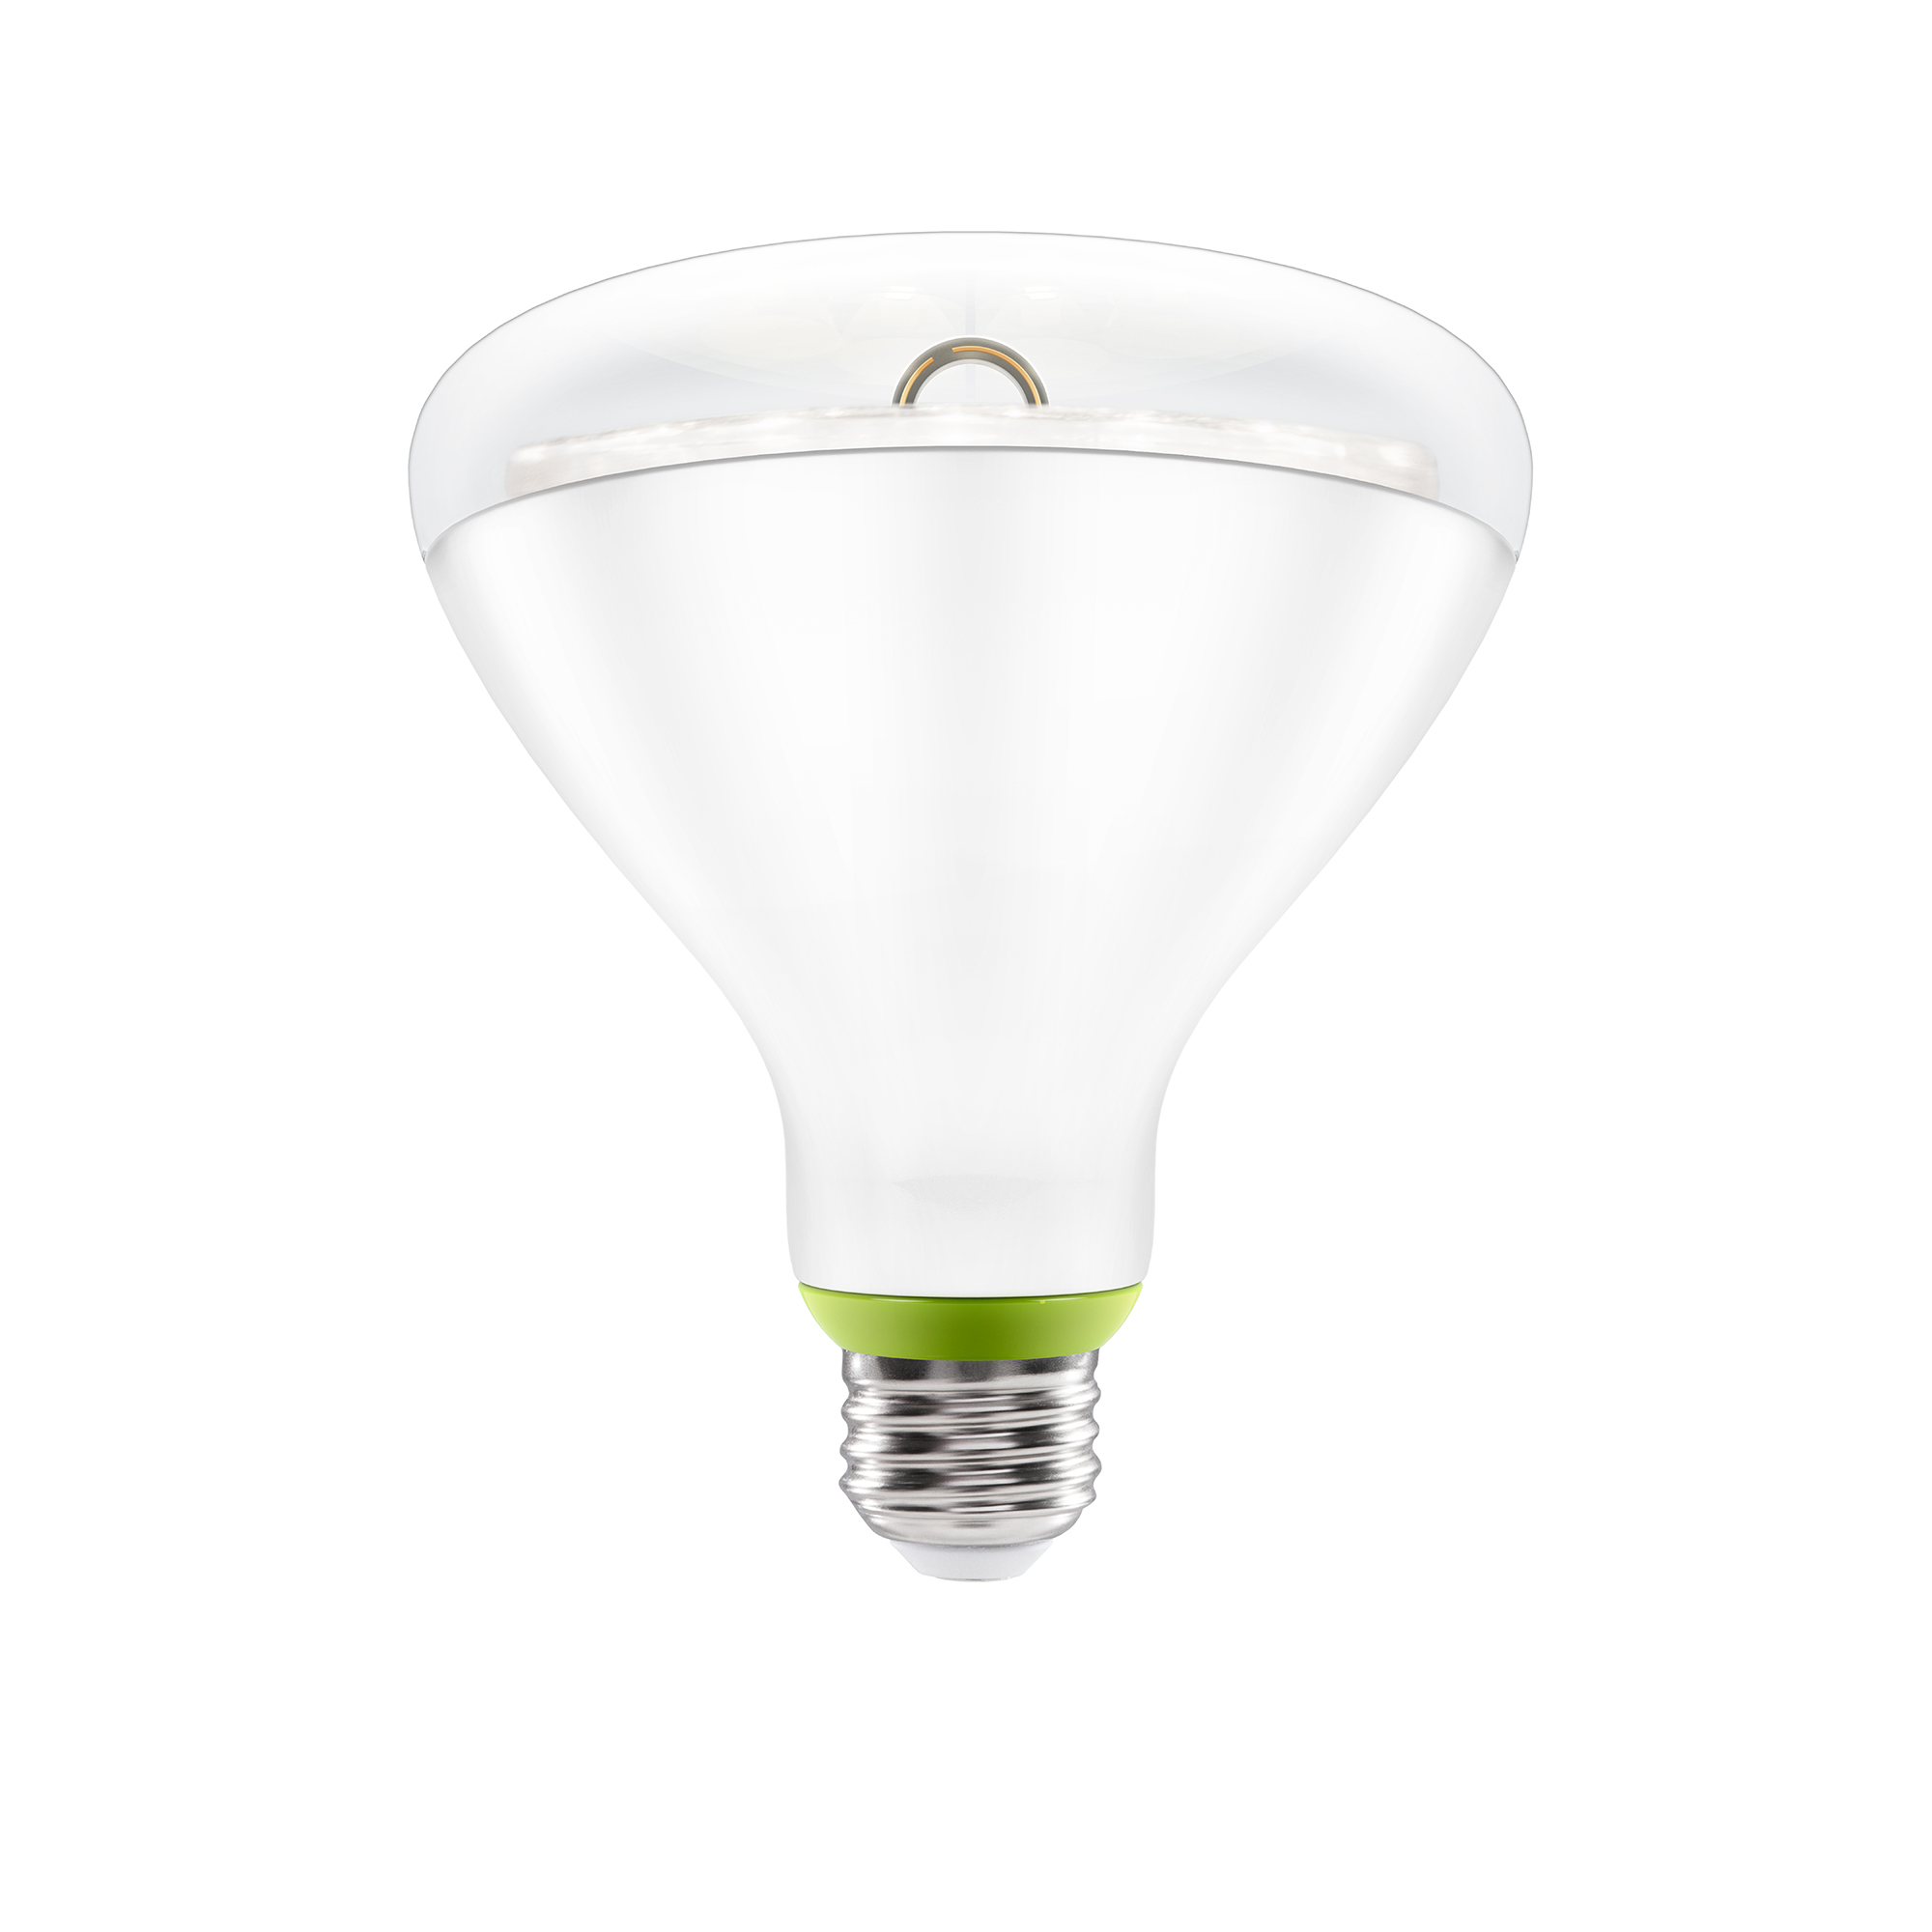 GE Announces Link Connected LED, An Easy & Affordable Way